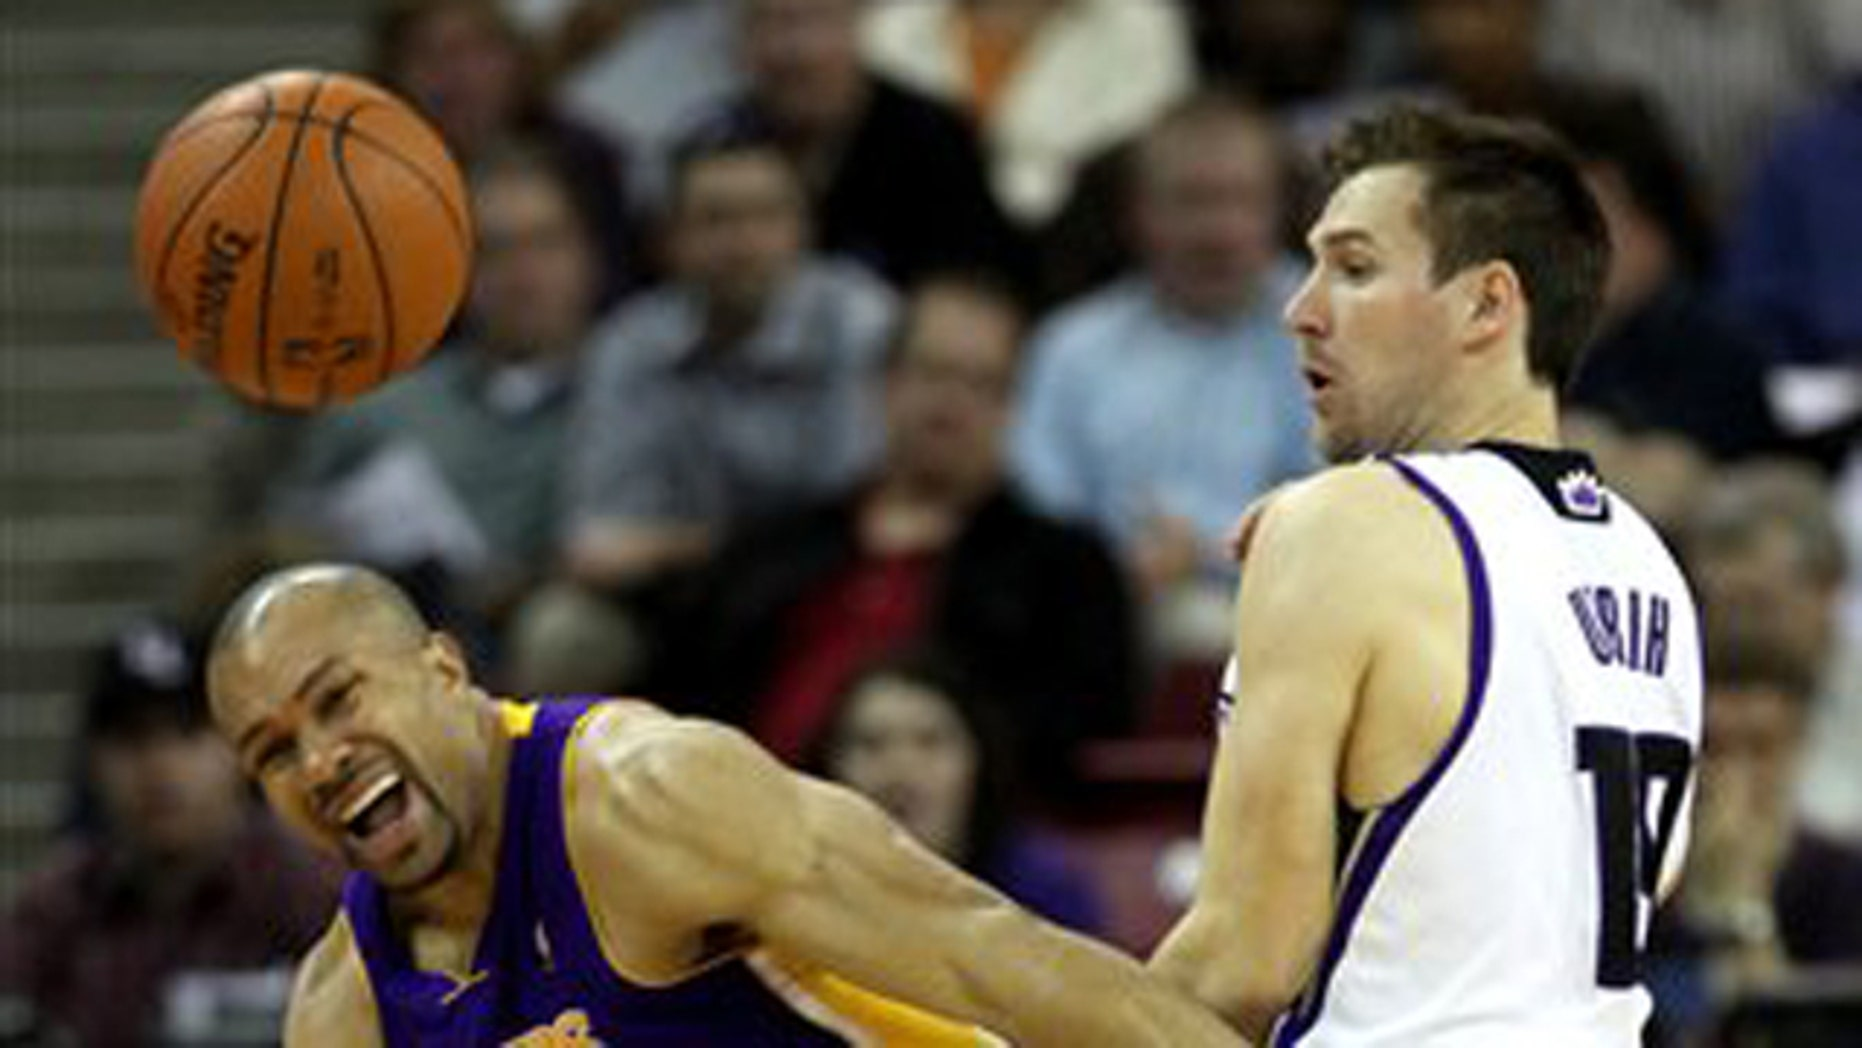 Los Angeles Lakers guard Derek Fisher, left, and Sacramento Kings guard Beno Udrih, of Slovenia collide during the a game in Sacramento.